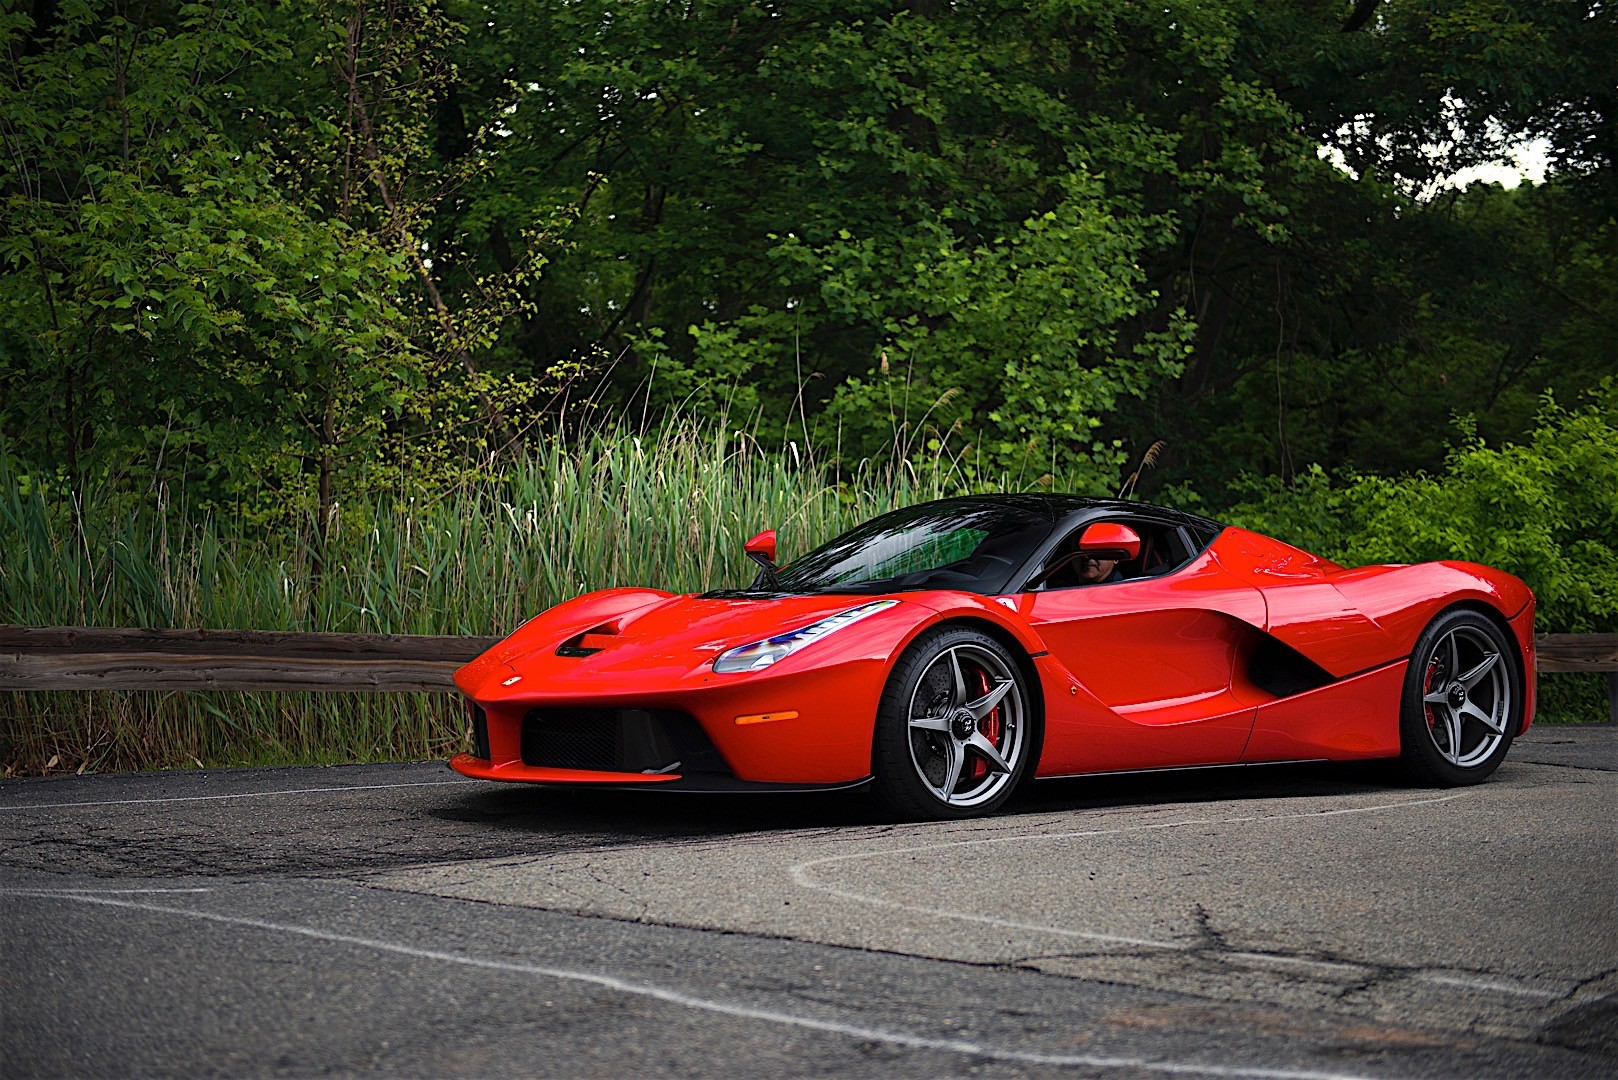 ferrari laferrari 2013 2014 2015 autoevolution. Black Bedroom Furniture Sets. Home Design Ideas